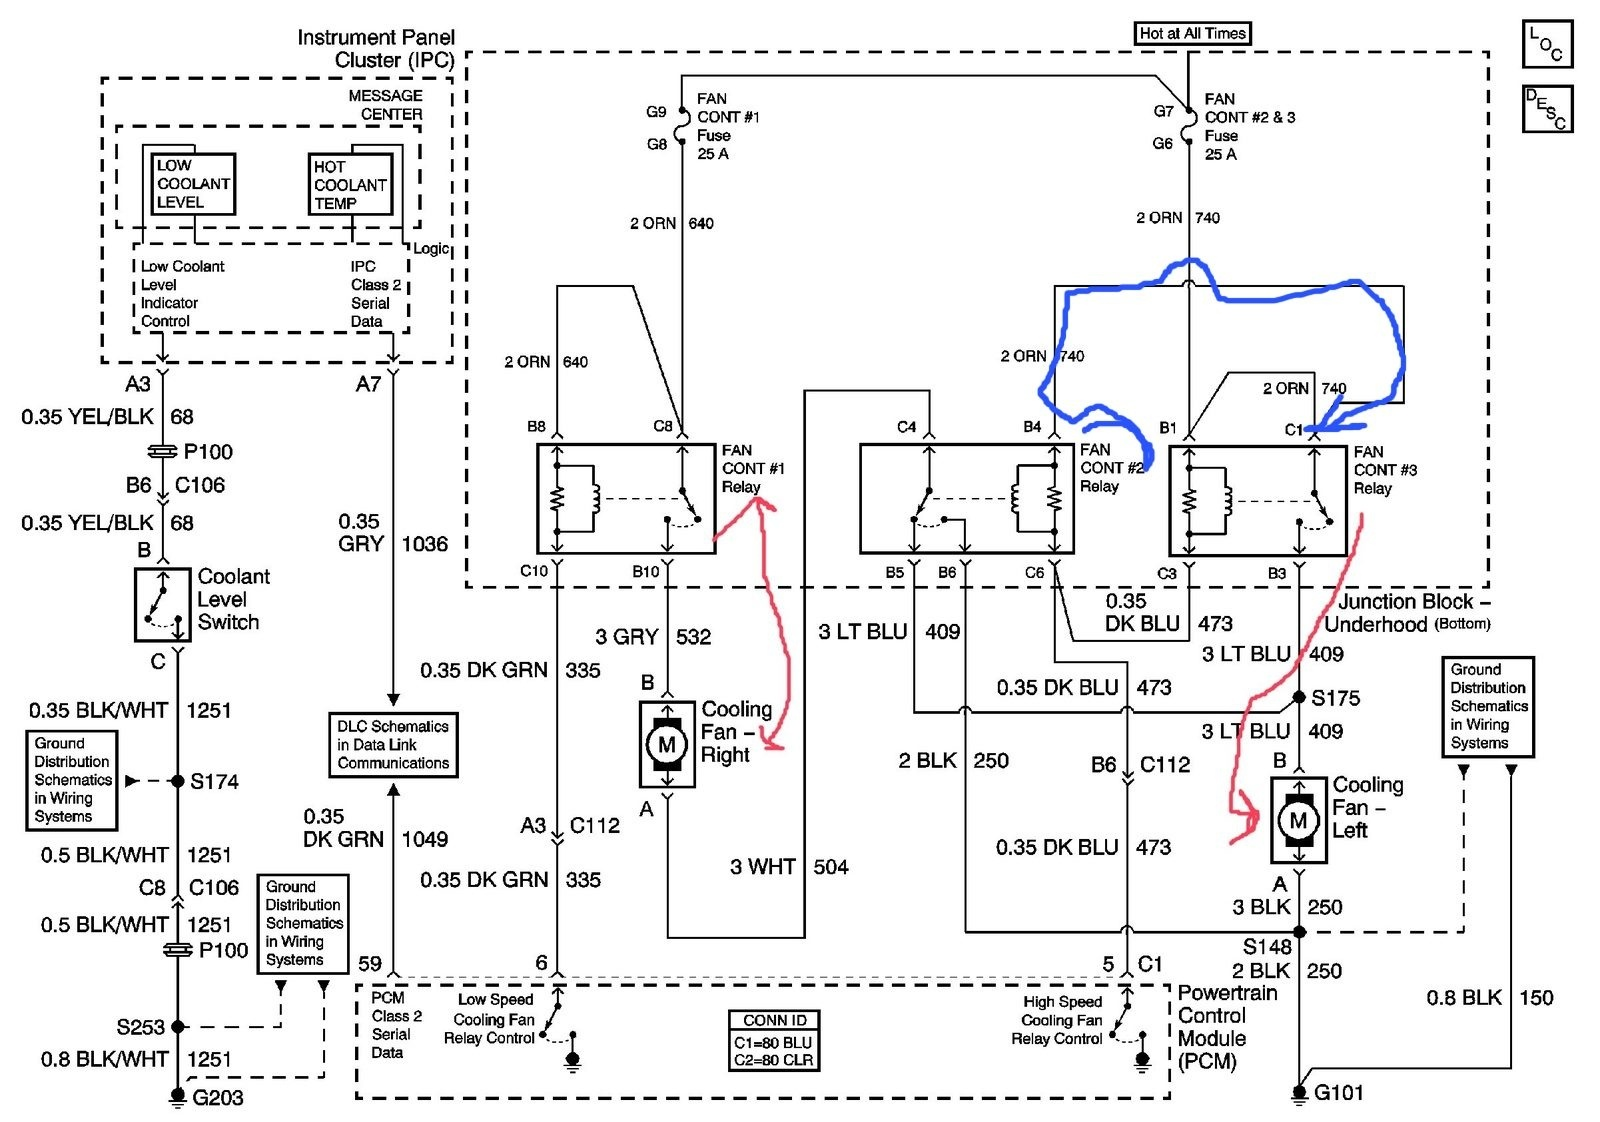 hight resolution of chevy impala engine diagram on chevy impala 2003 engine fans wiring 2003 impala cooling fan wiring diagram 2003 impala cooling fans wiring diagram